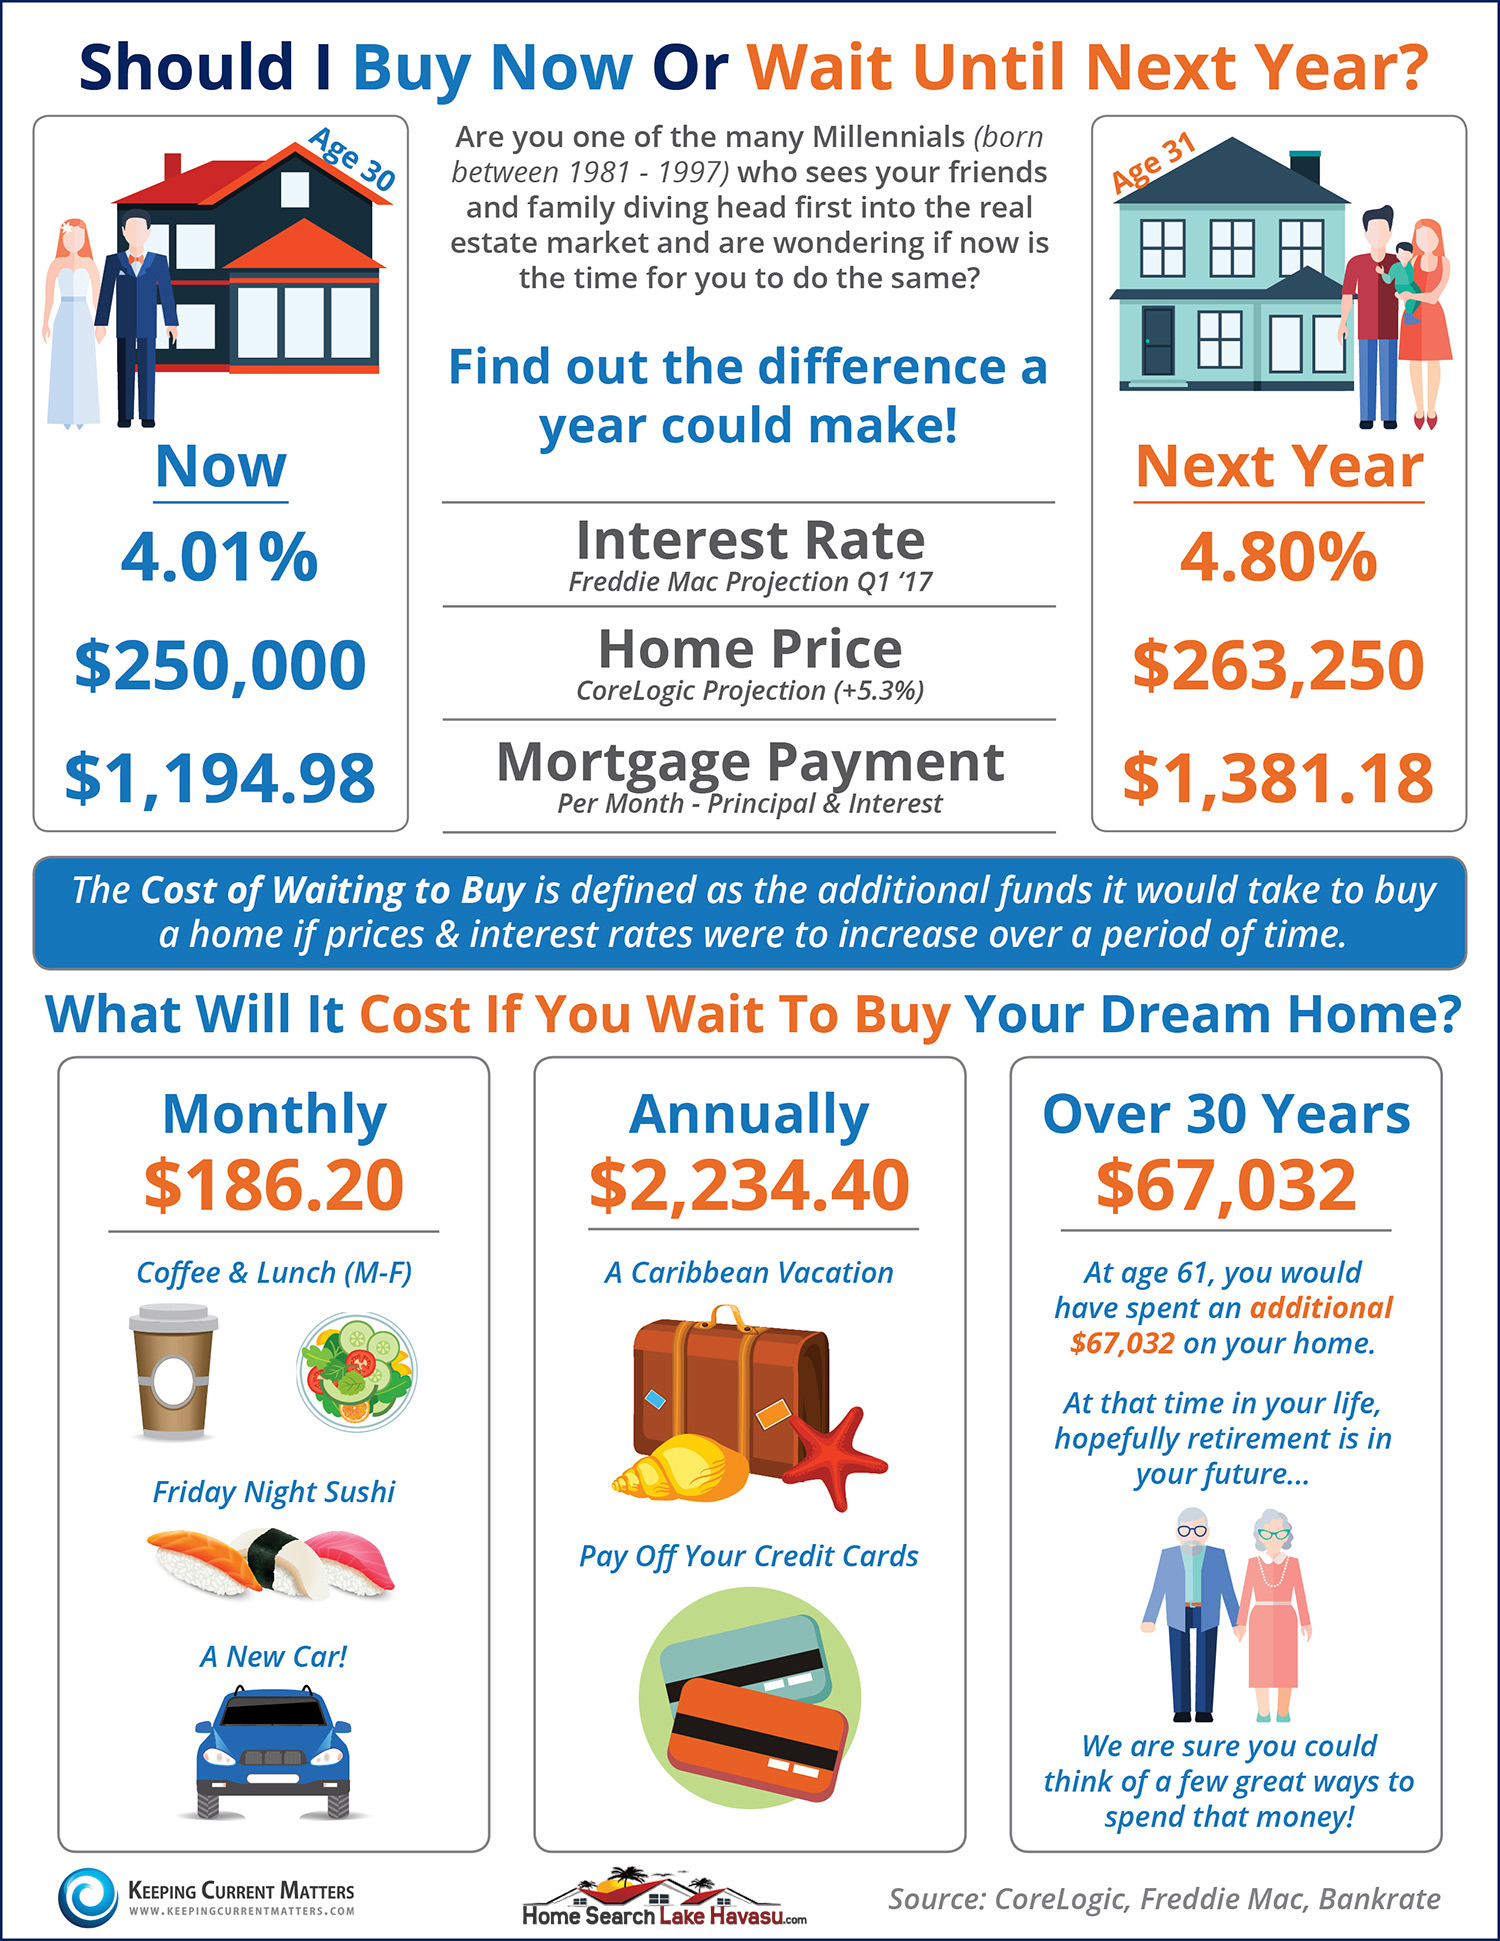 Should you buy a home now, or wait until next year? Lake Havasu real estate